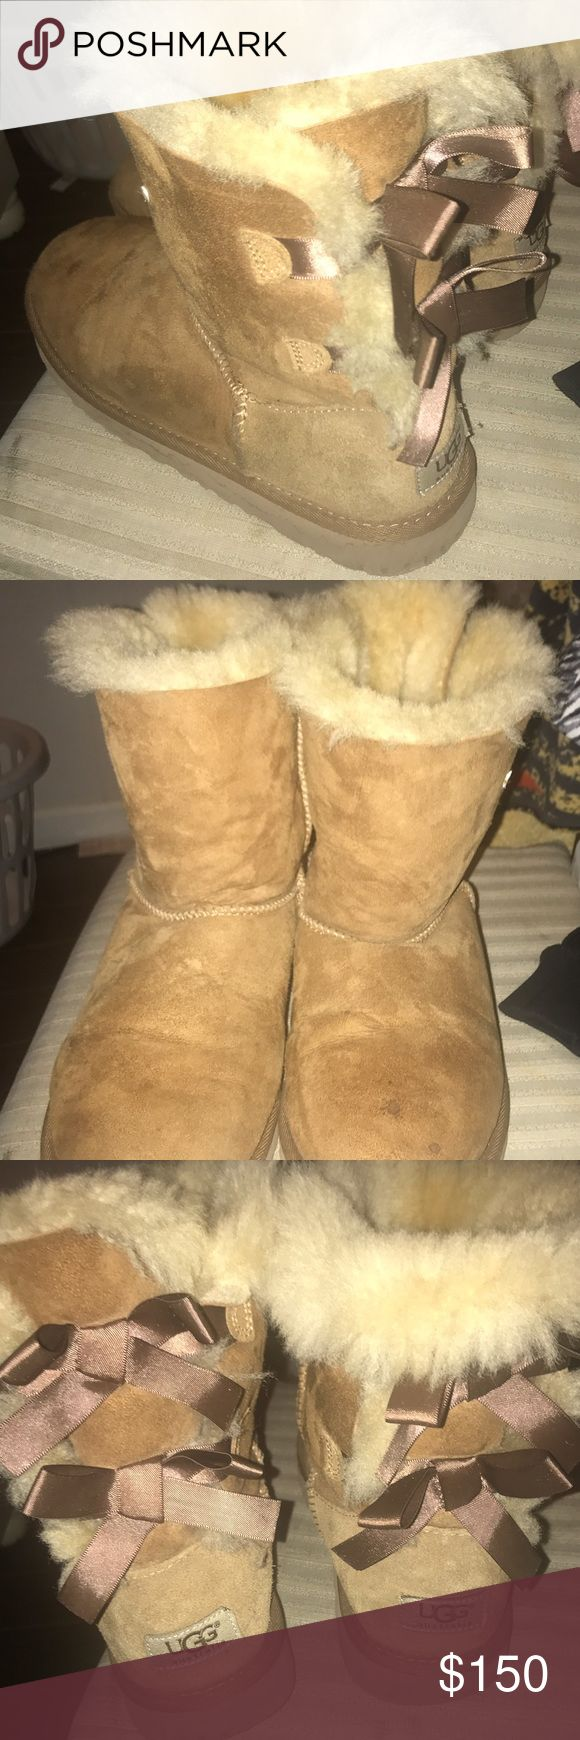 Cut Ugg Boots Supper cute original ugg boots with bows on back fairly used with very small water stains but look great! UGG Shoes Winter & Rain Boots